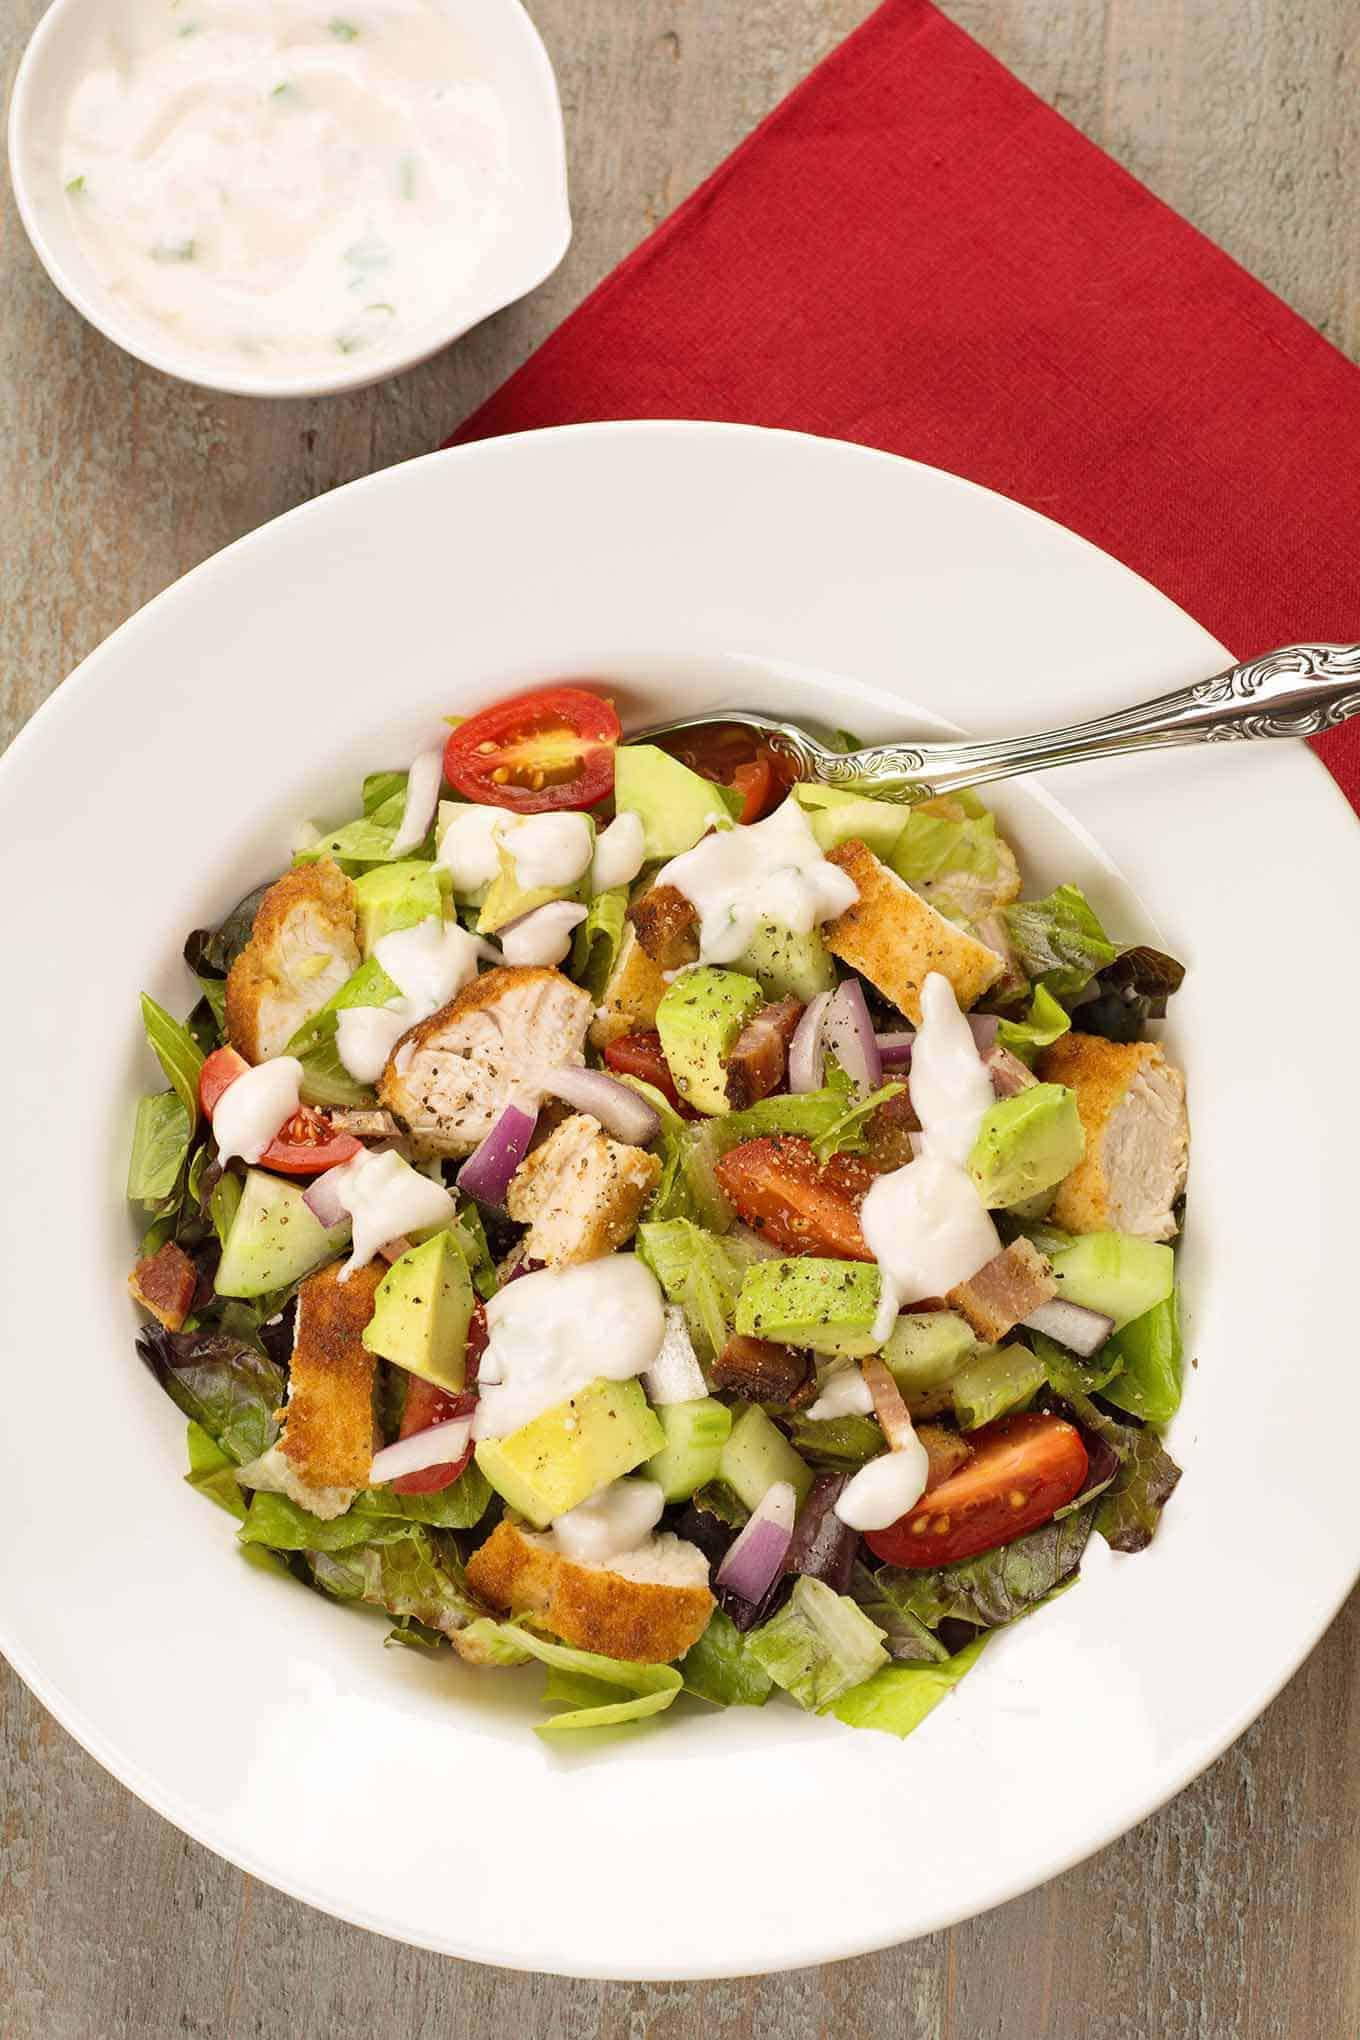 A serving of chopped greens and diced chicken tenderloins, avocado, grape tomatoes, red onion, and bacon topped with ranch dressing.